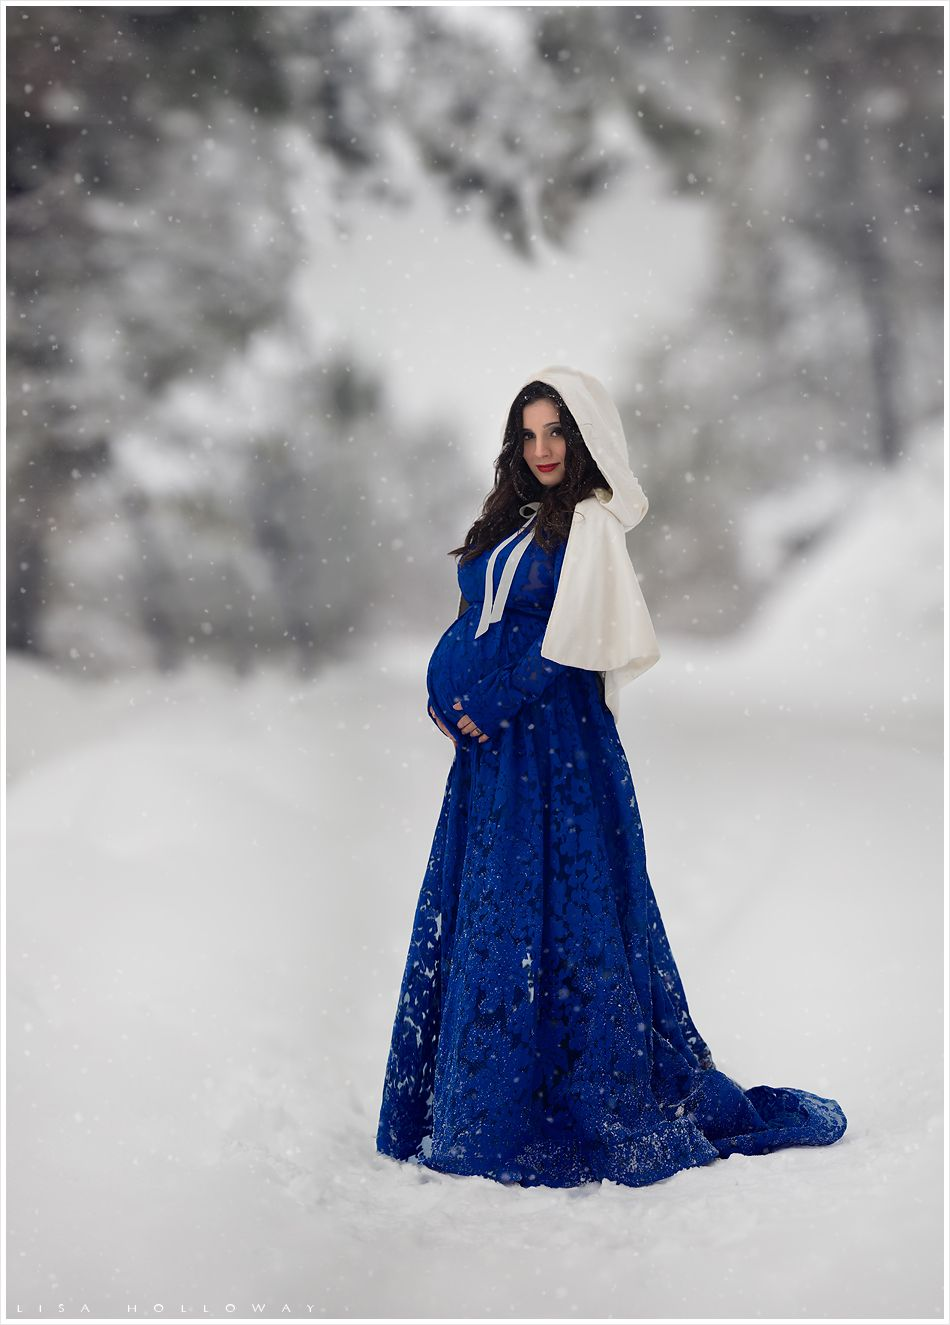 c9186b1d7b Beautiful pregnant woman with a royal blue dress and white cloak stands on  a snowy road lined with snow covered trees. LJHolloway Photography is a Las  Vegas ...